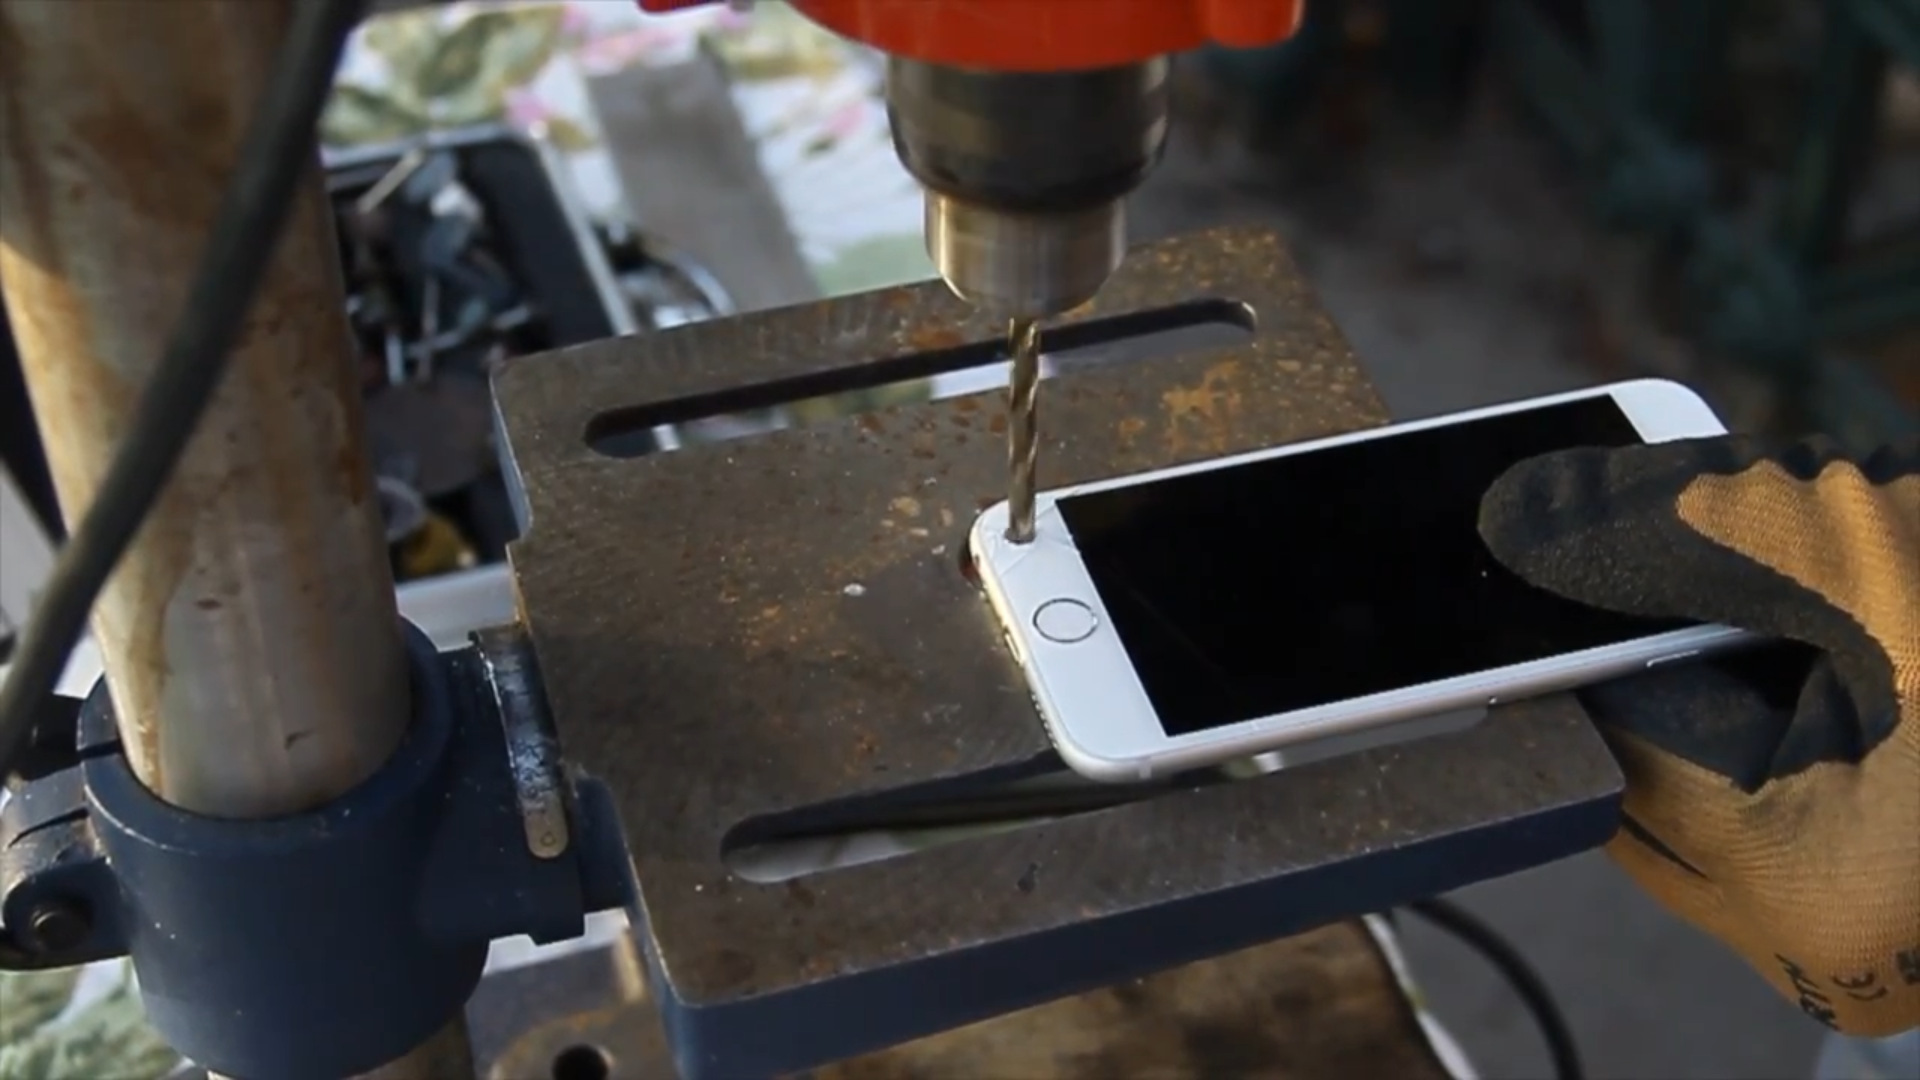 Bendgate solution iphone 6 (3)